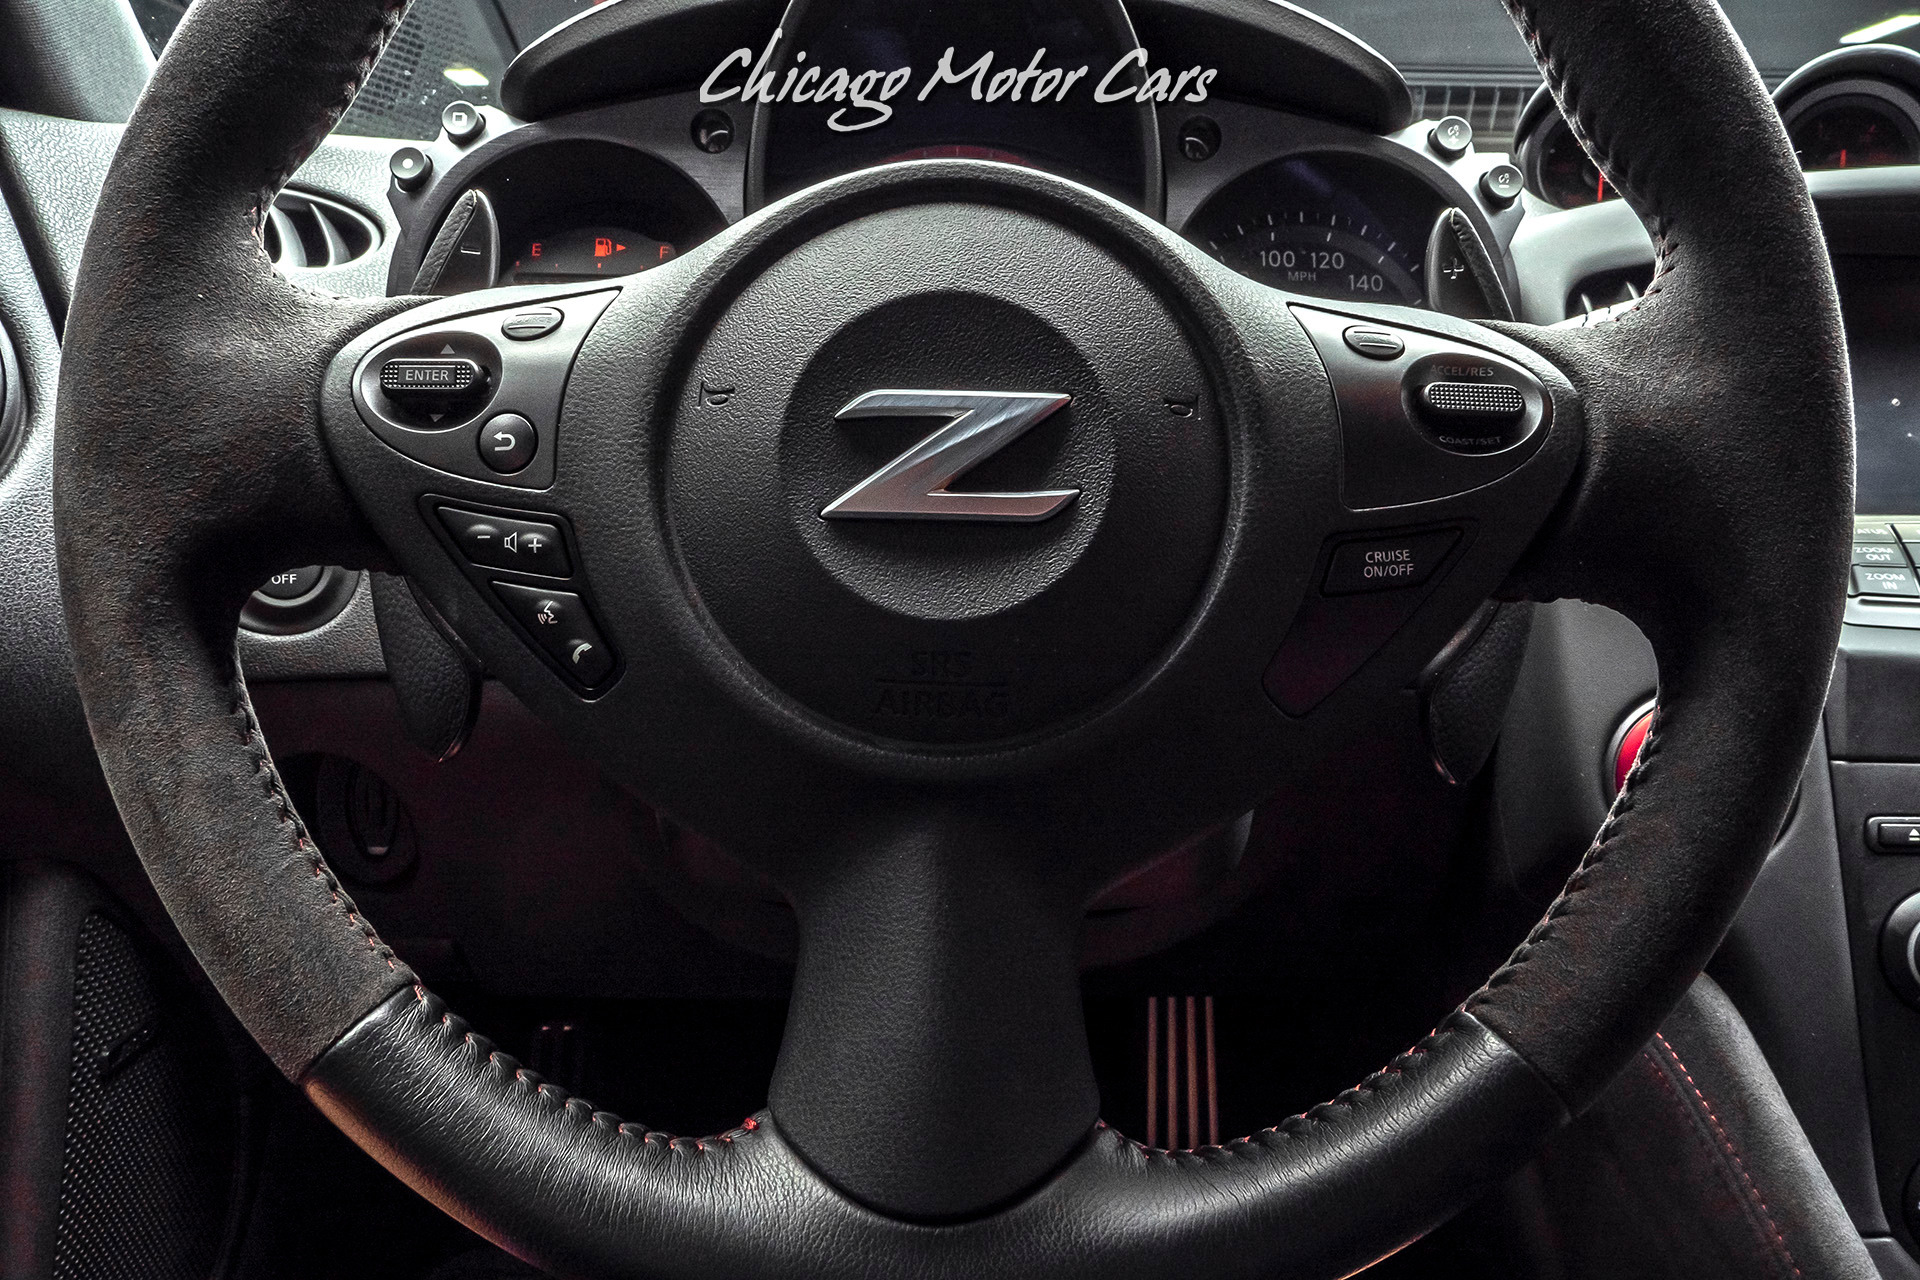 used 2019 nissan 370z nismo coupe rare example only 500 miles for sale special pricing chicago motor cars stock 16189 used 2019 nissan 370z nismo coupe rare